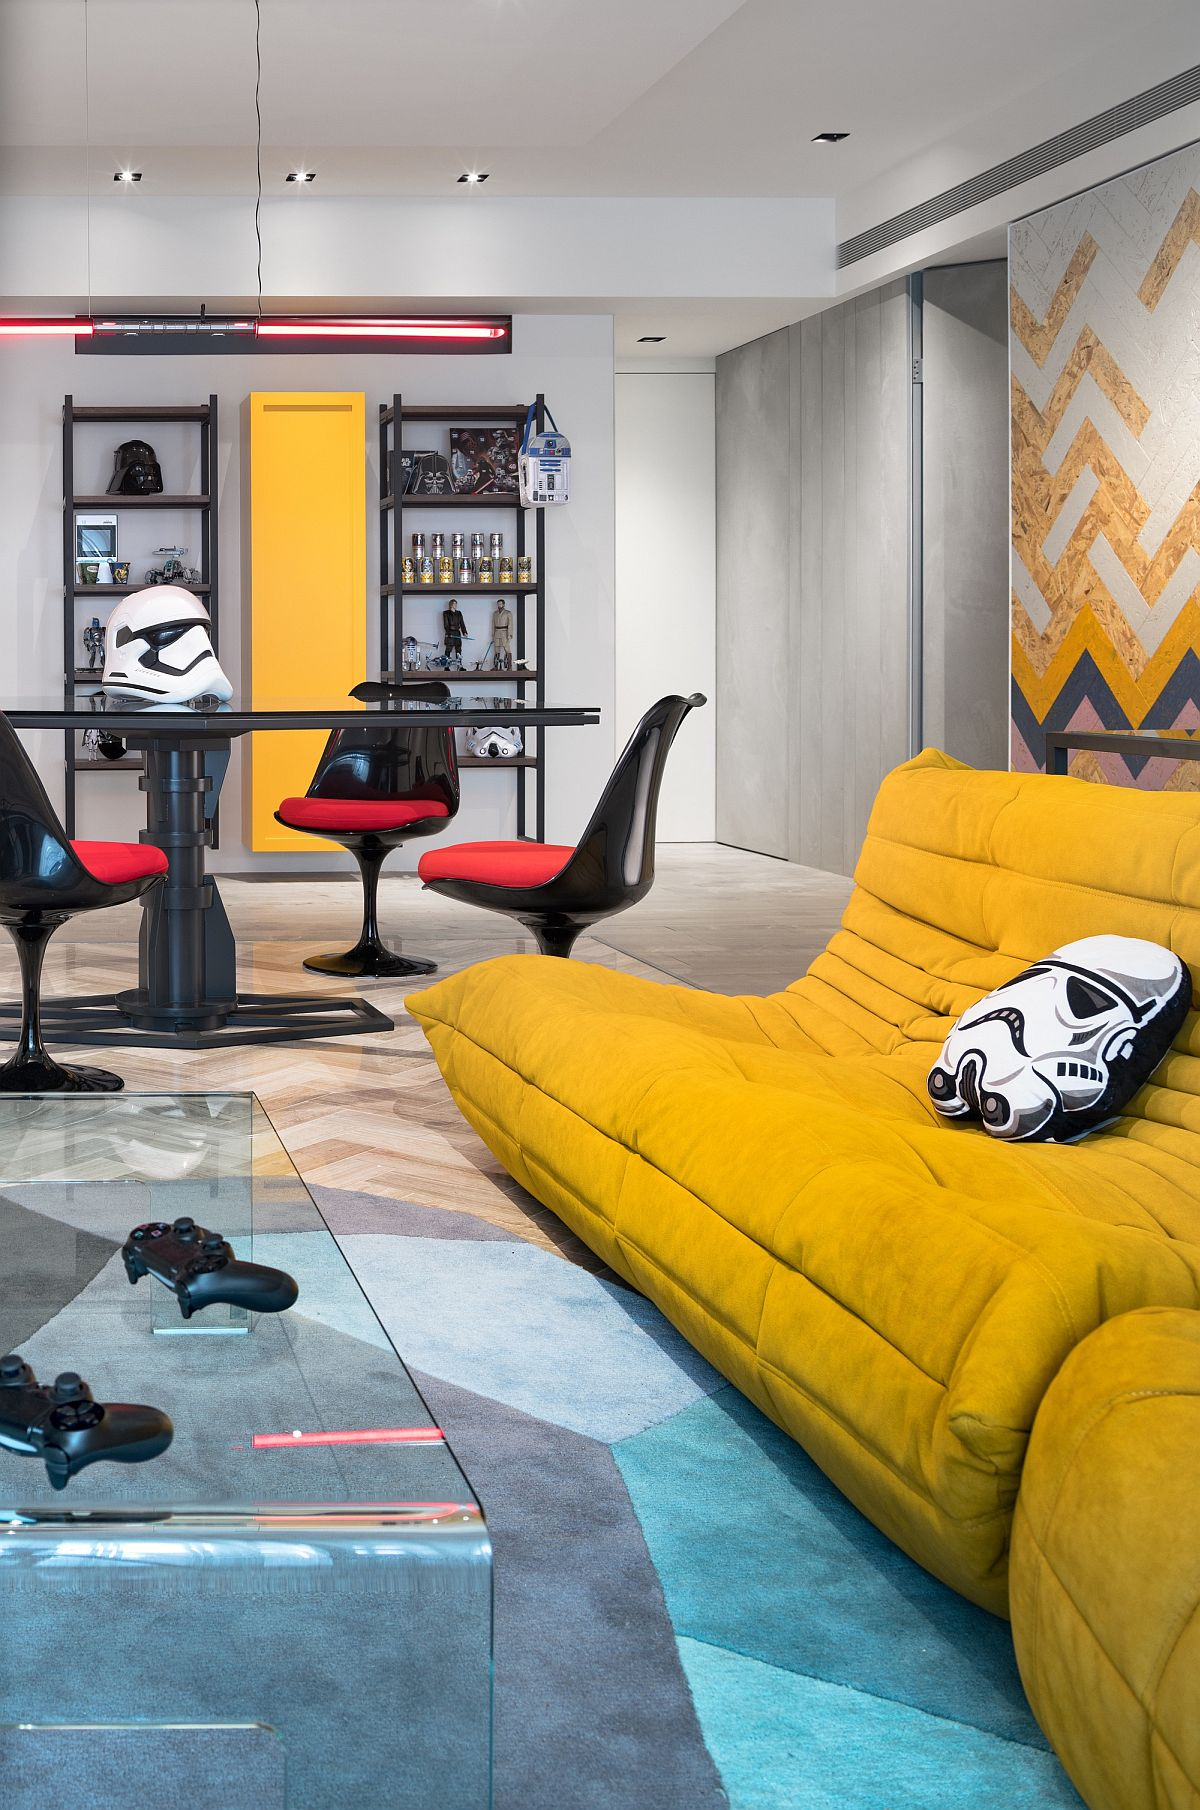 Fabulous-sofas-in-bright-yellow-add-a-fun-focal-point-to-the-open-living-room